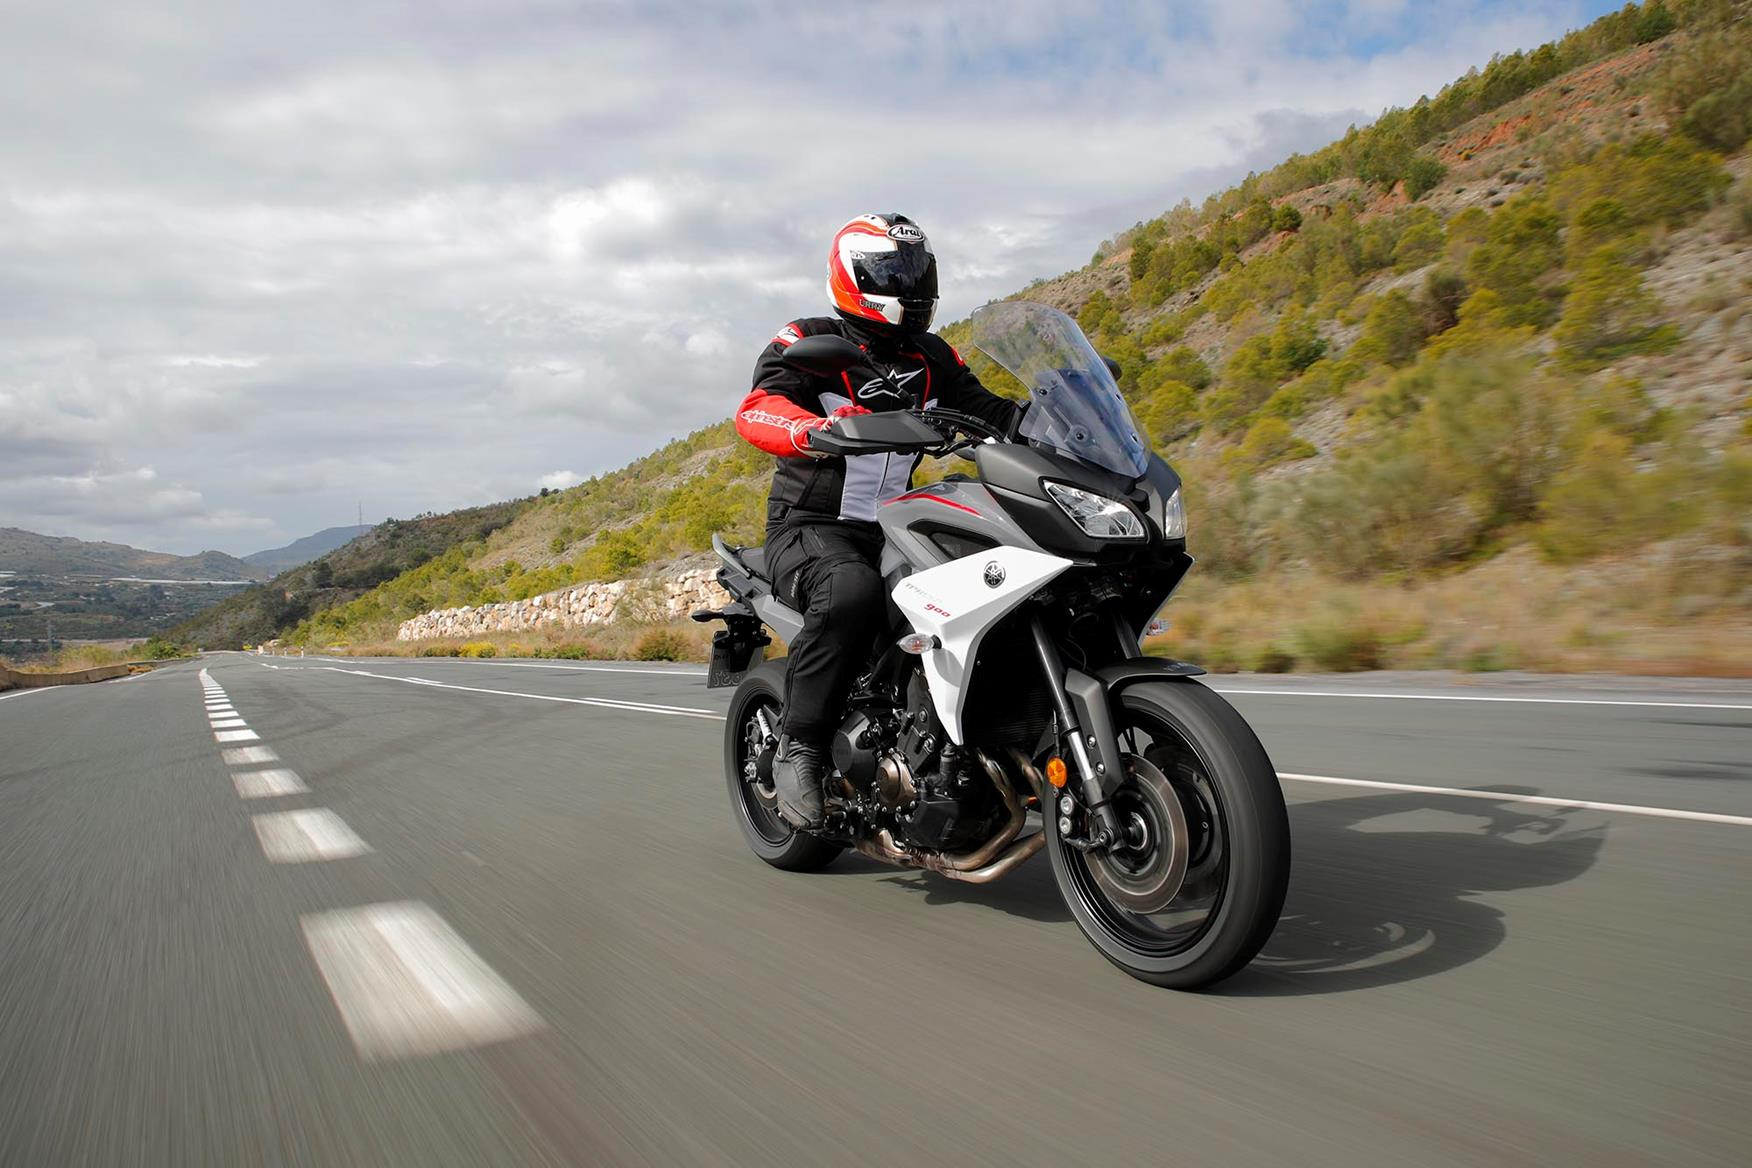 Yamahas 2018 Tracer 900 GT Is The FJ-09 Weve Always